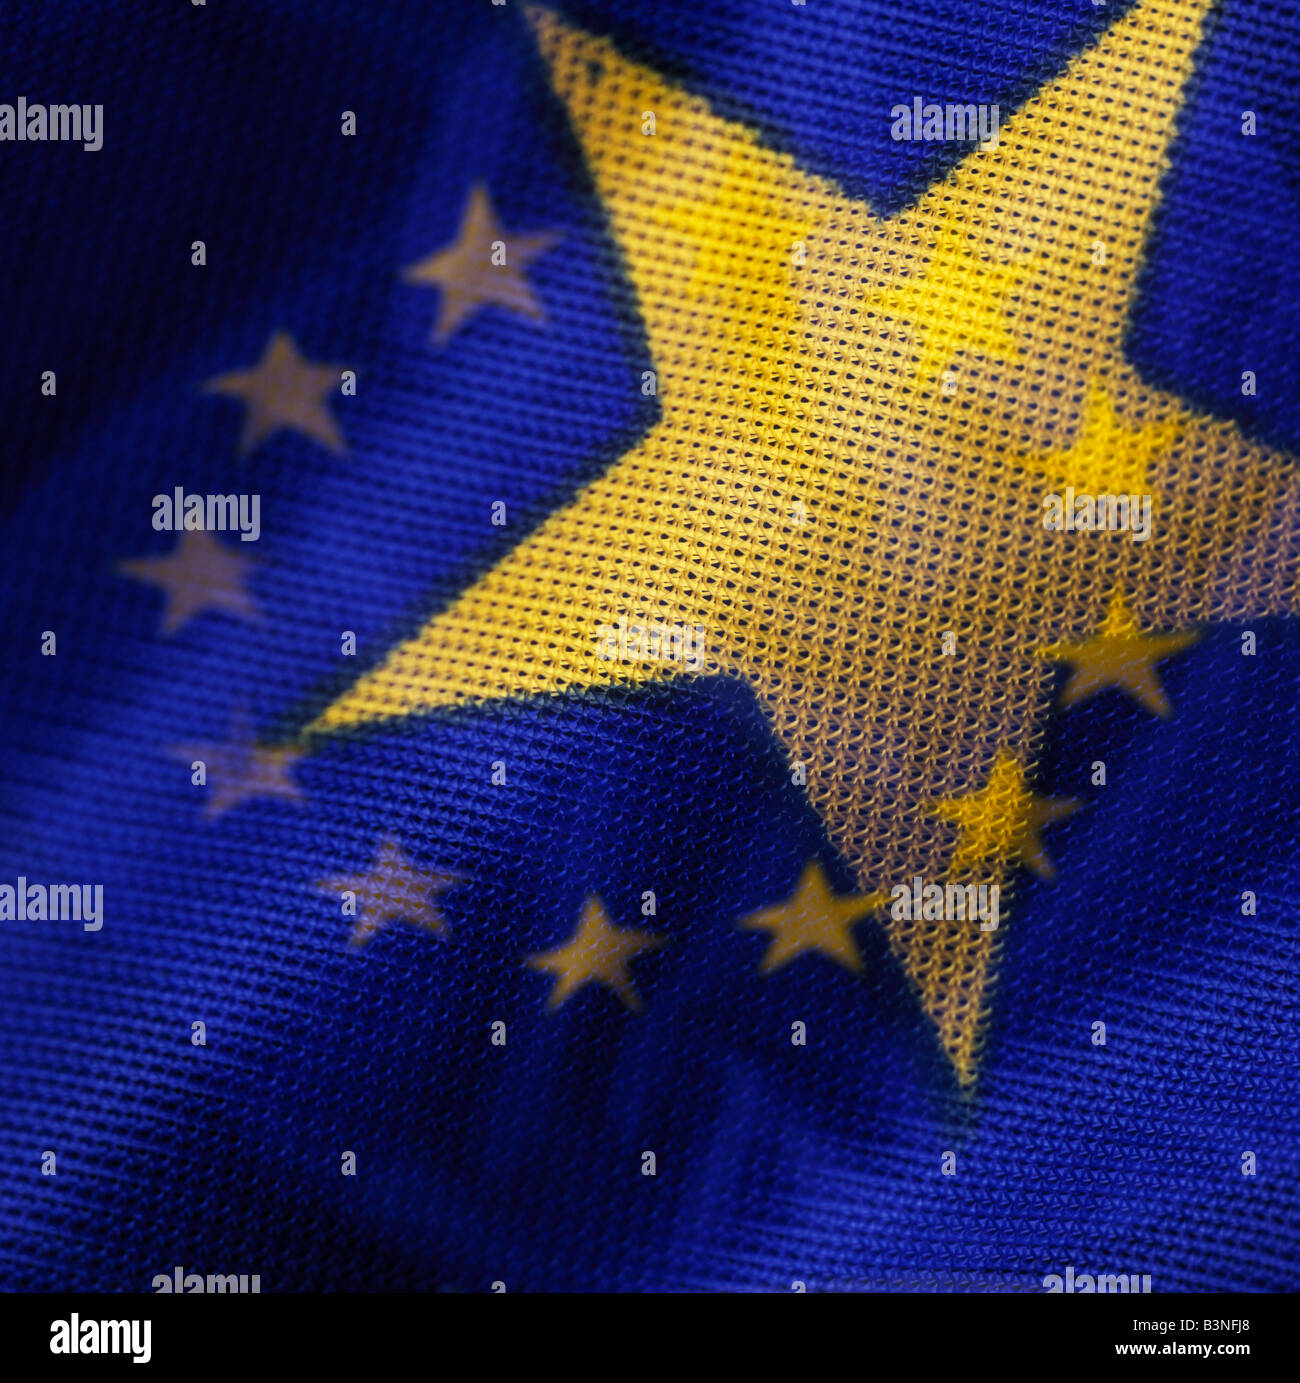 european flag, double exposure, hole flag single star - Stock Image